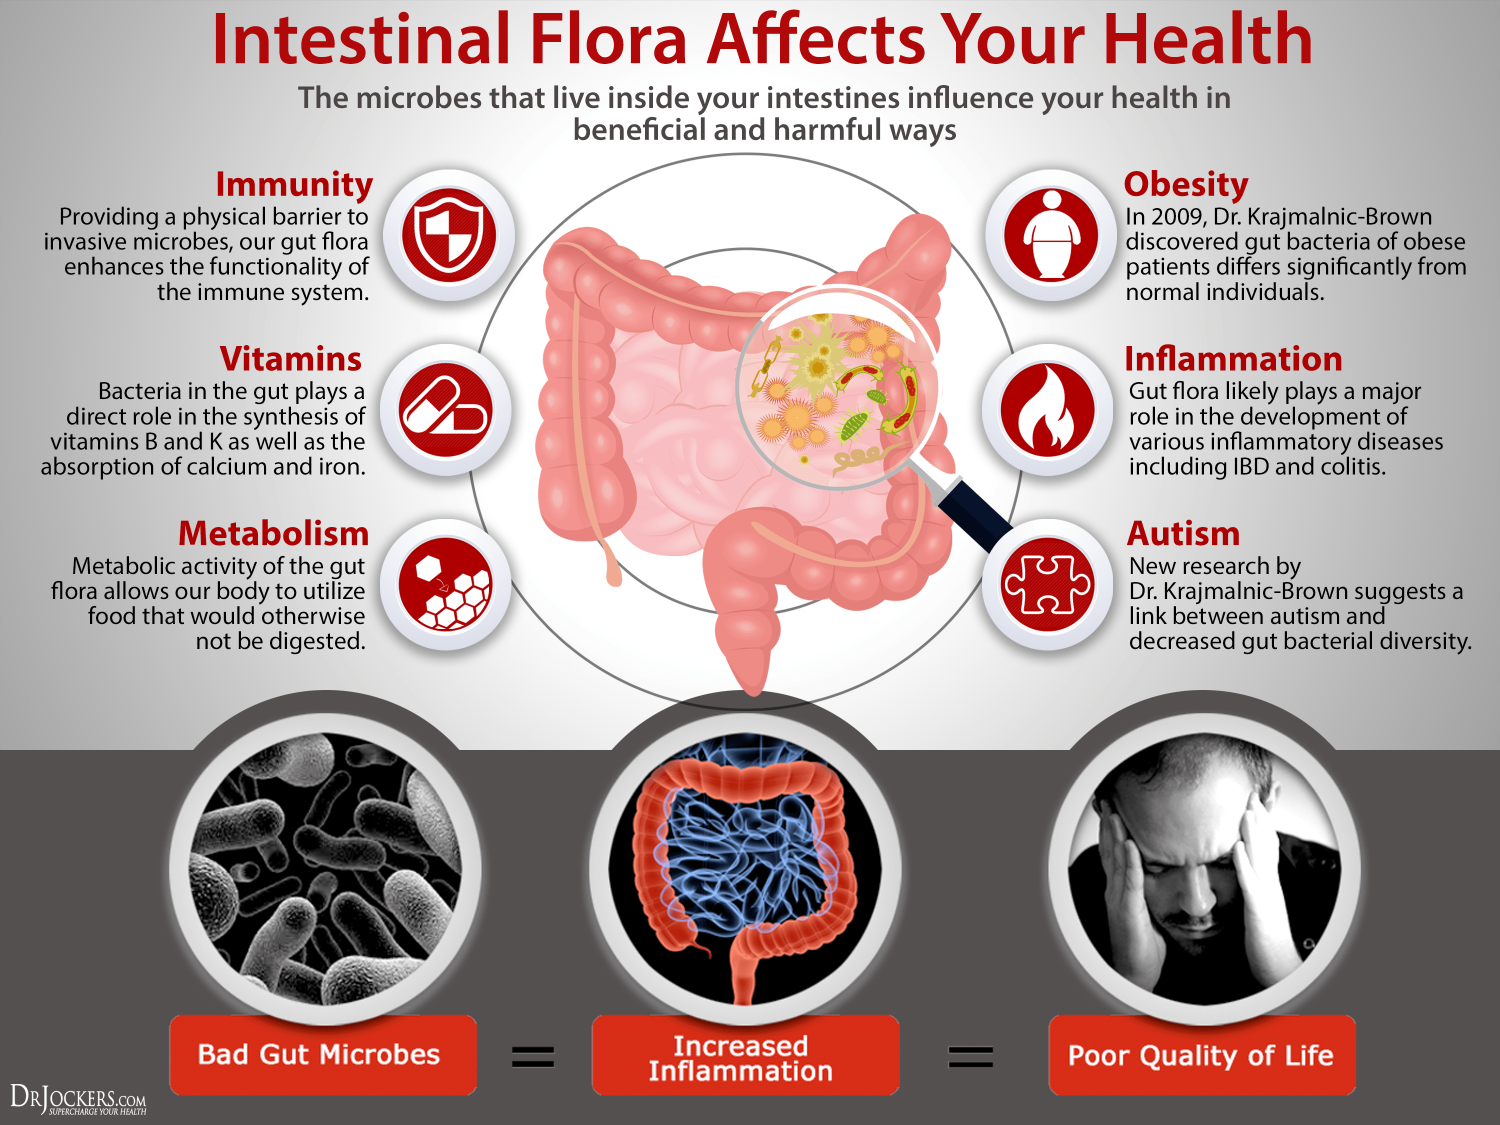 Feed Good Gut Bacteria With…Fiber?